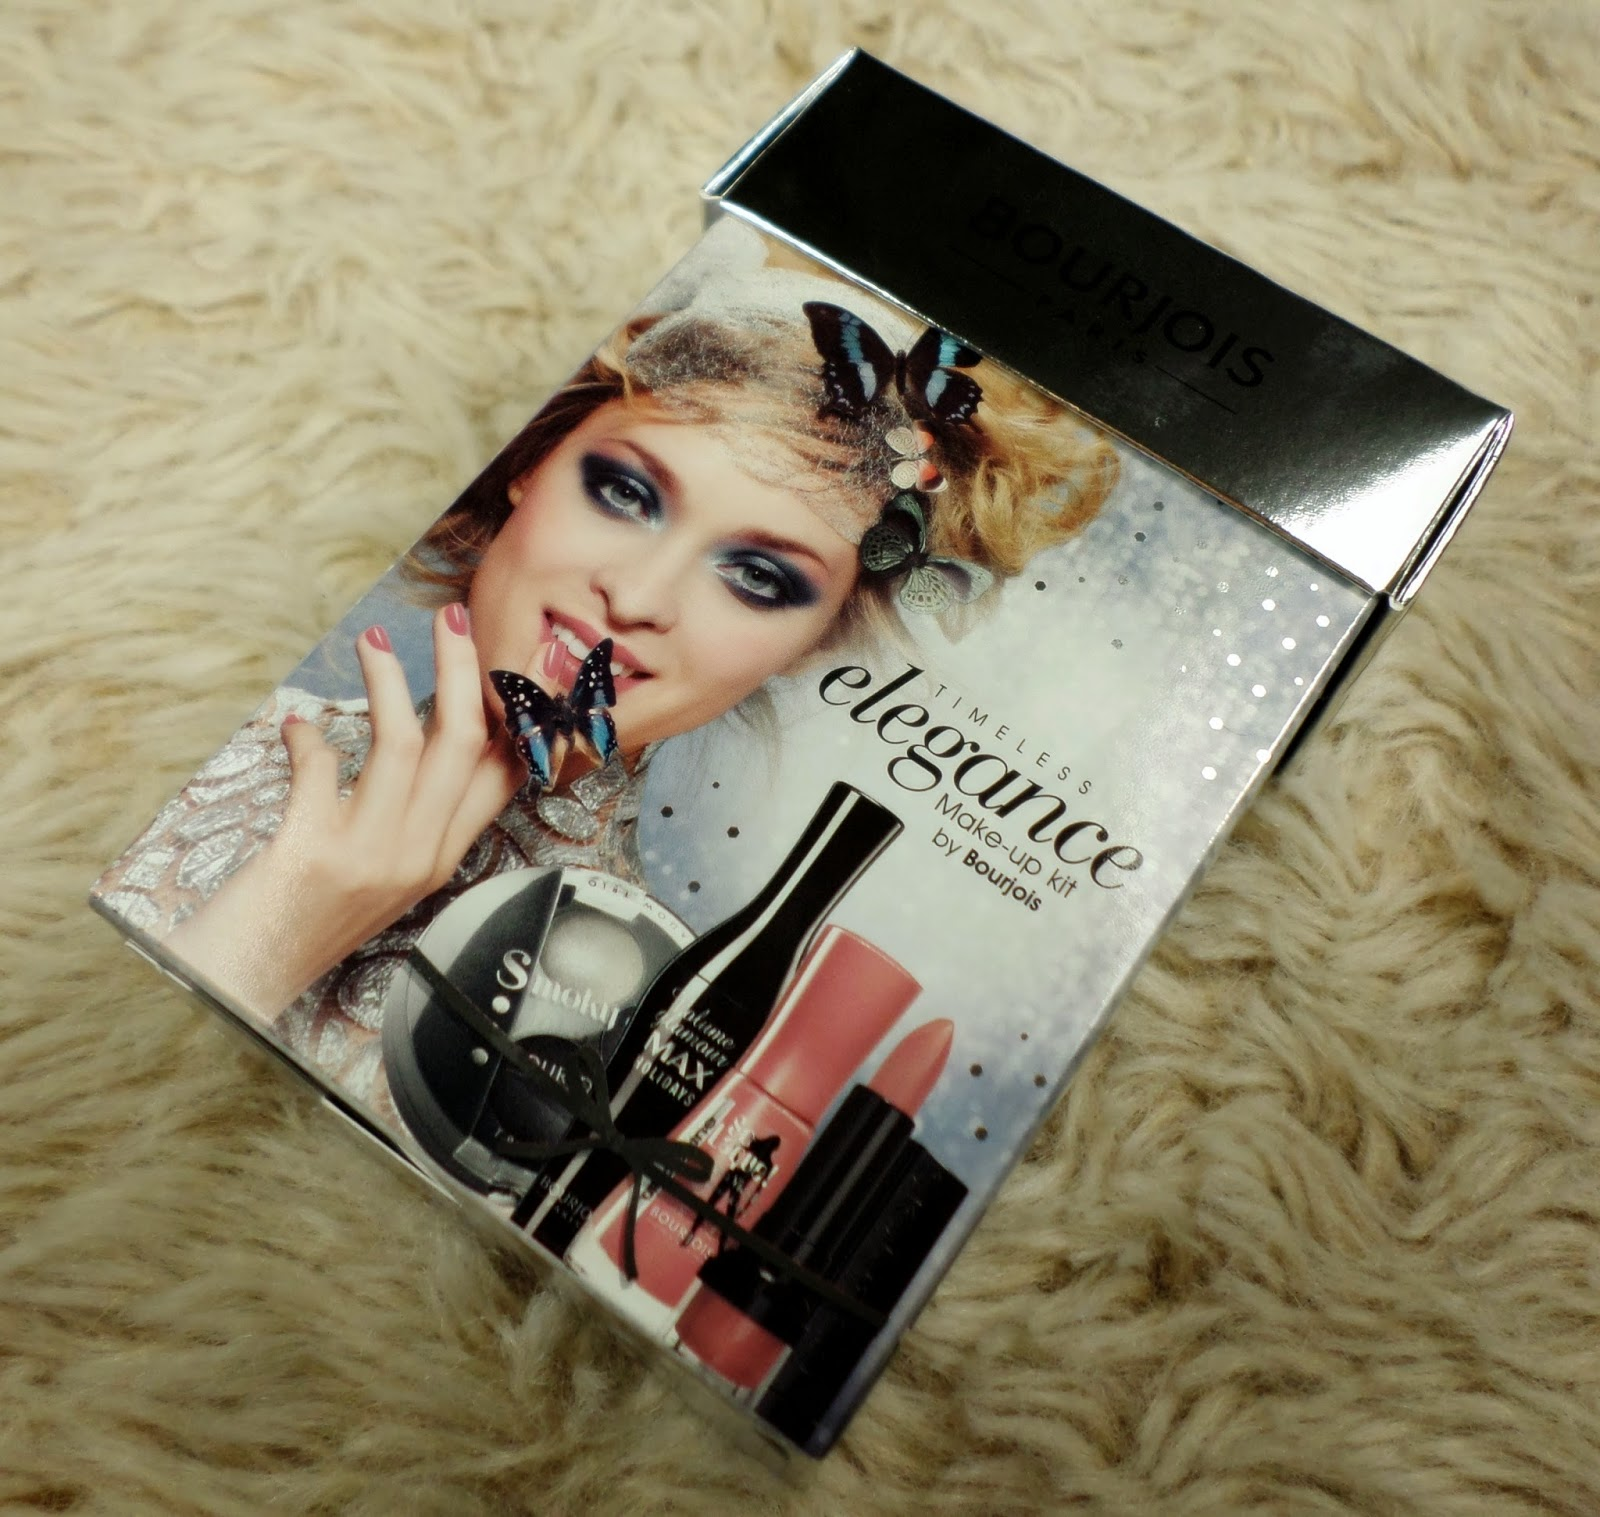 Bourjois Timeless Elegance Makeup Kit Boots Free Gift with Purchase